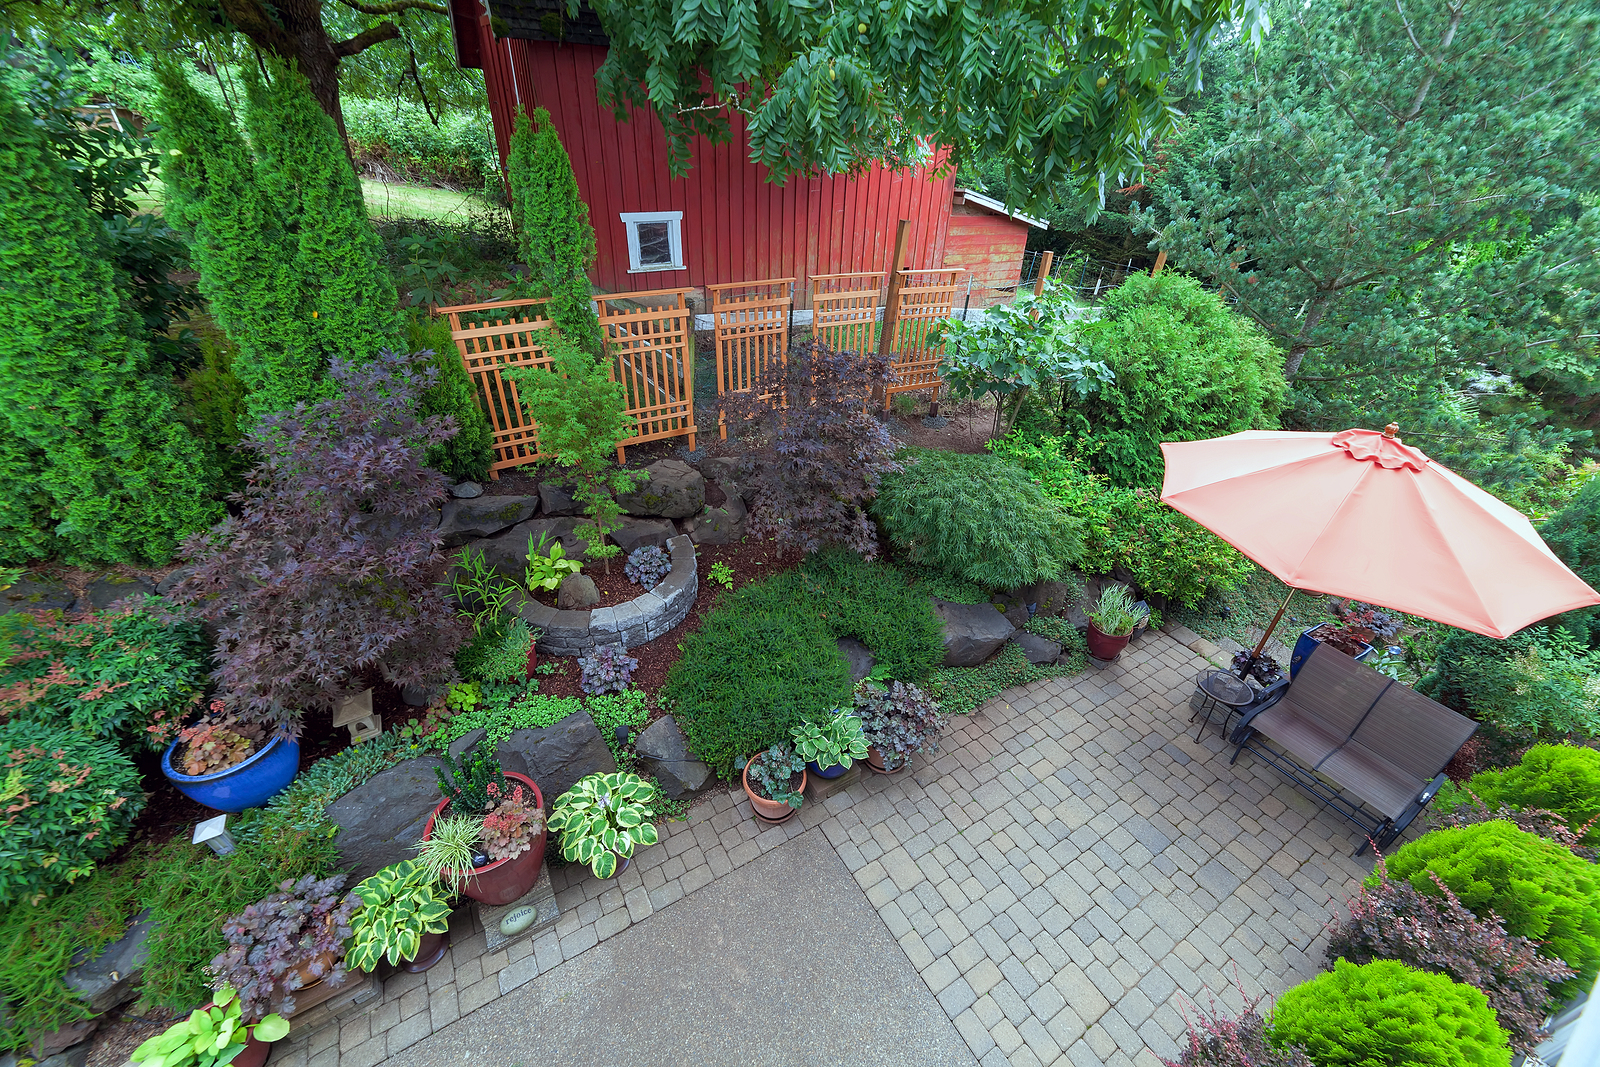 Patio Contractors Explain How to Easily Enhance Your Outdoor Space